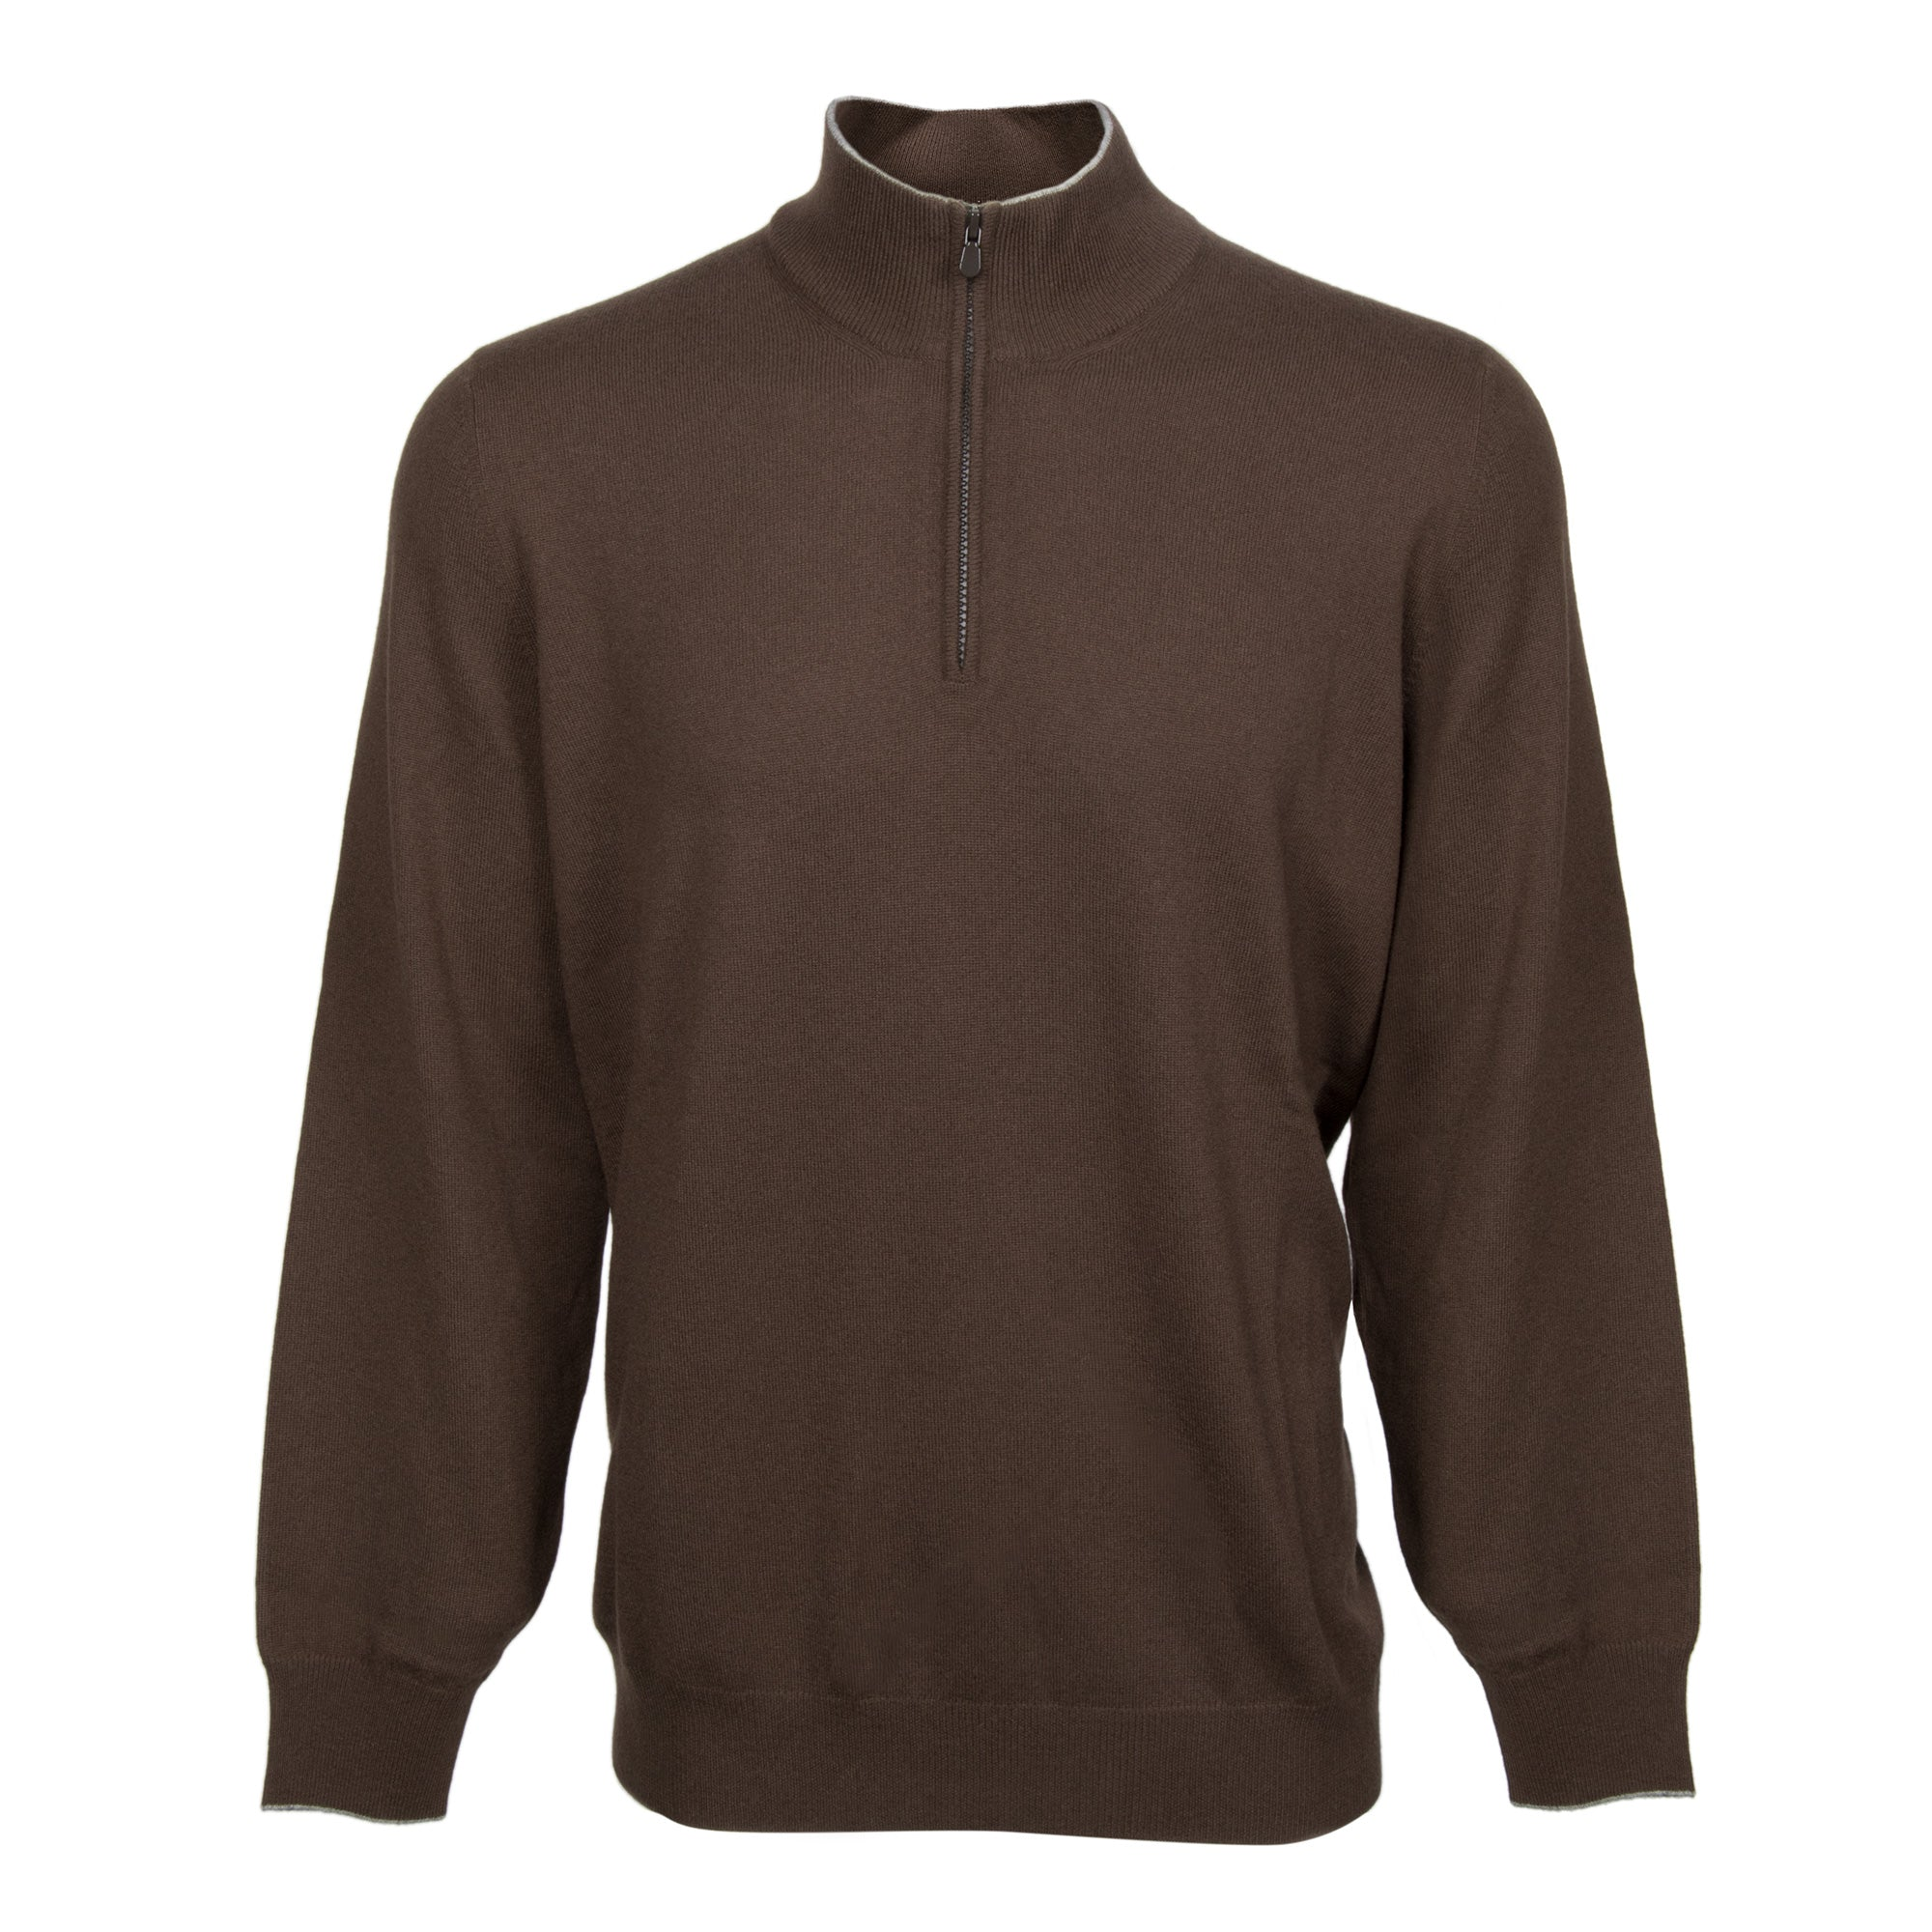 Brunello Cucinelli Lupetto Zip Cashmere Sweater in Brown